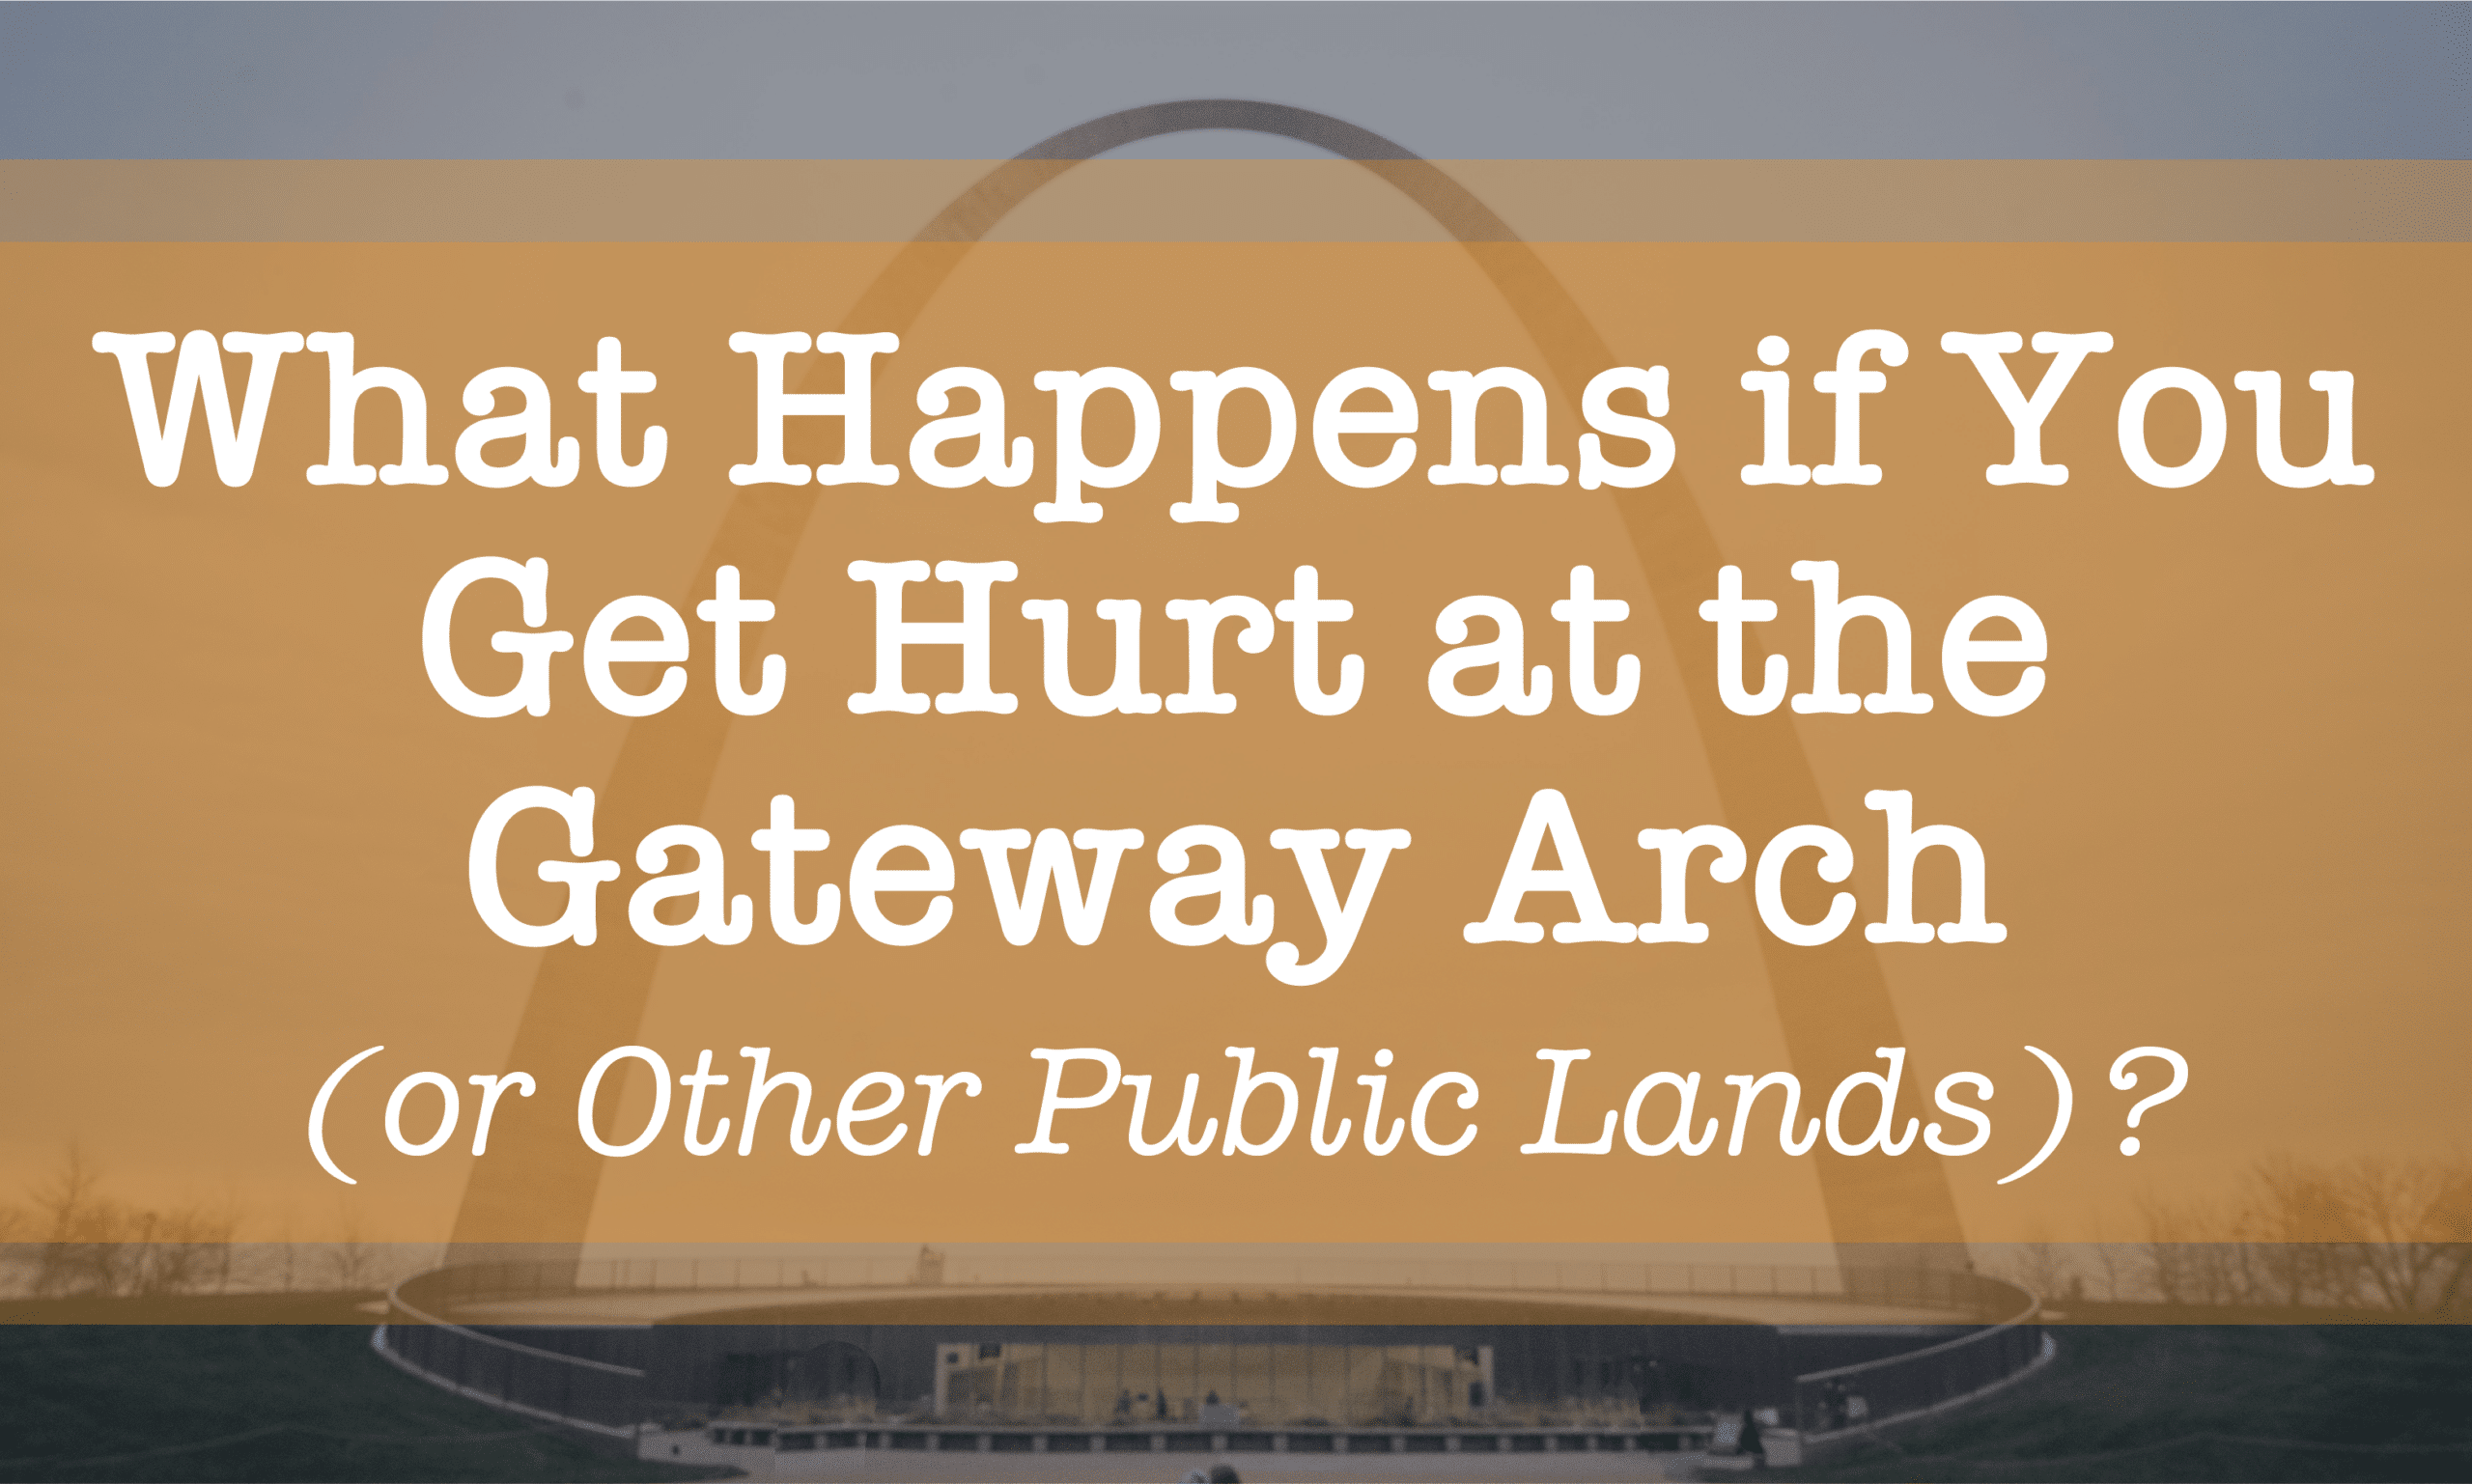 What Happens if You Get Hurt at the Gateway Arch (or Other Public Lands)?